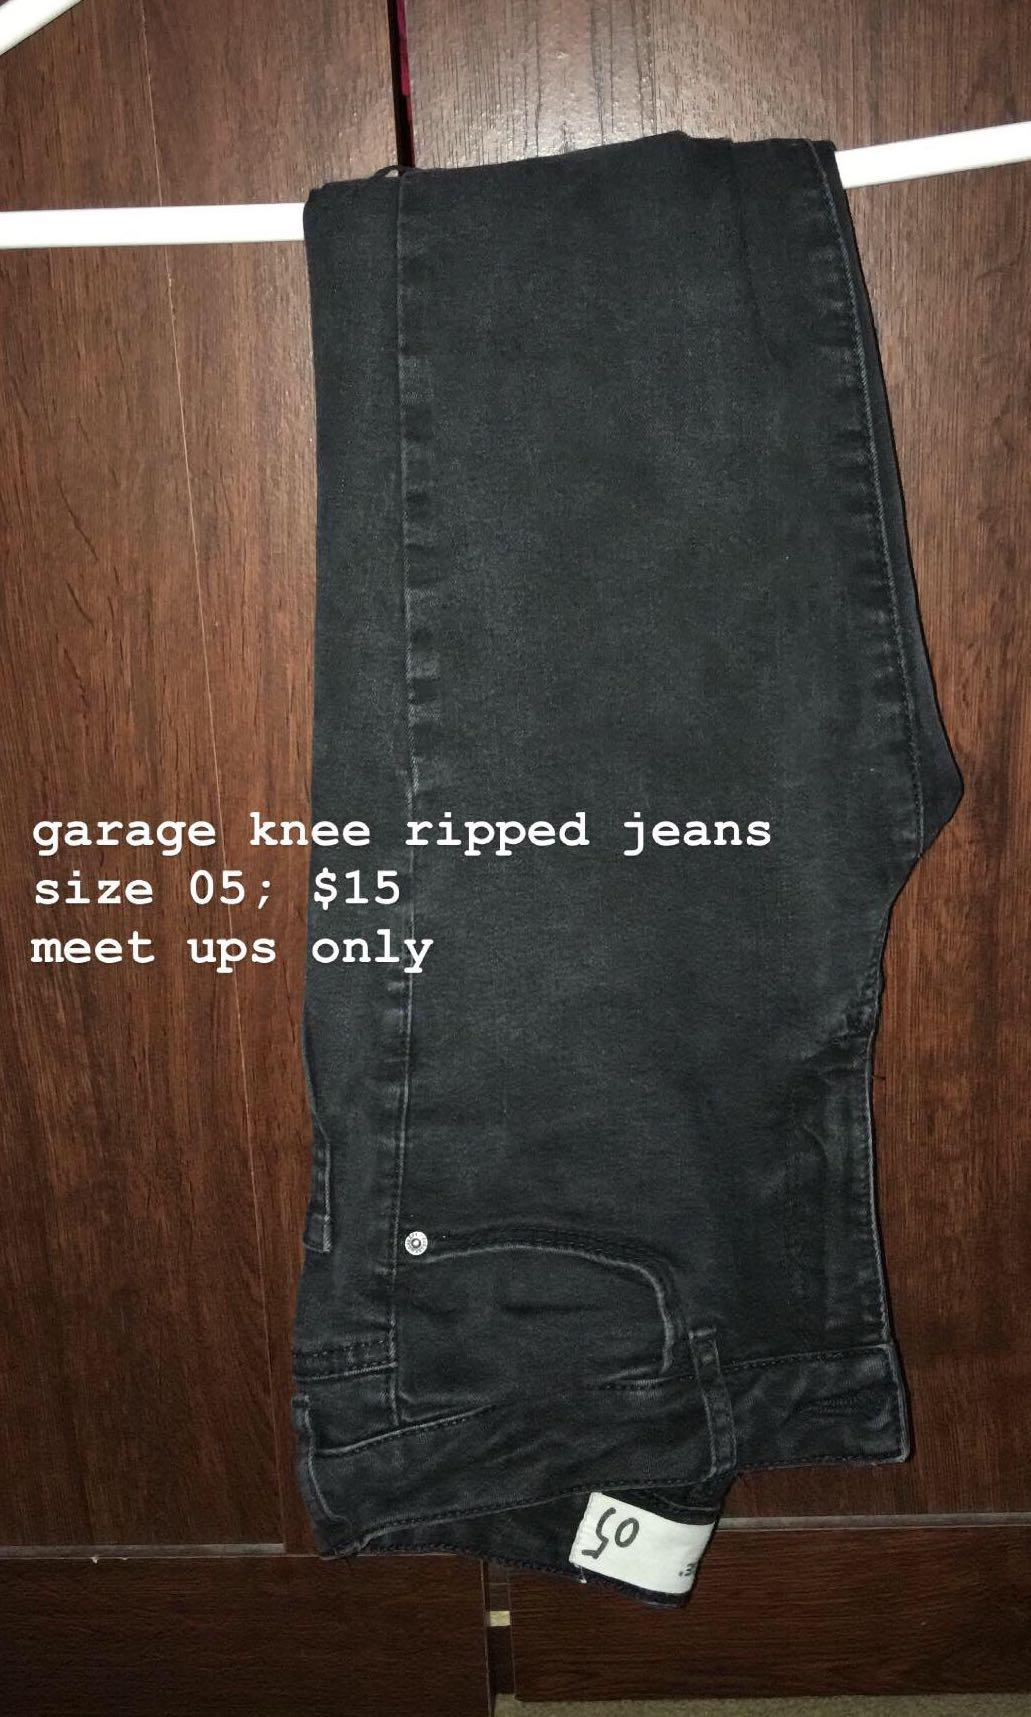 GARAGE KNEE RIPPED JEANS